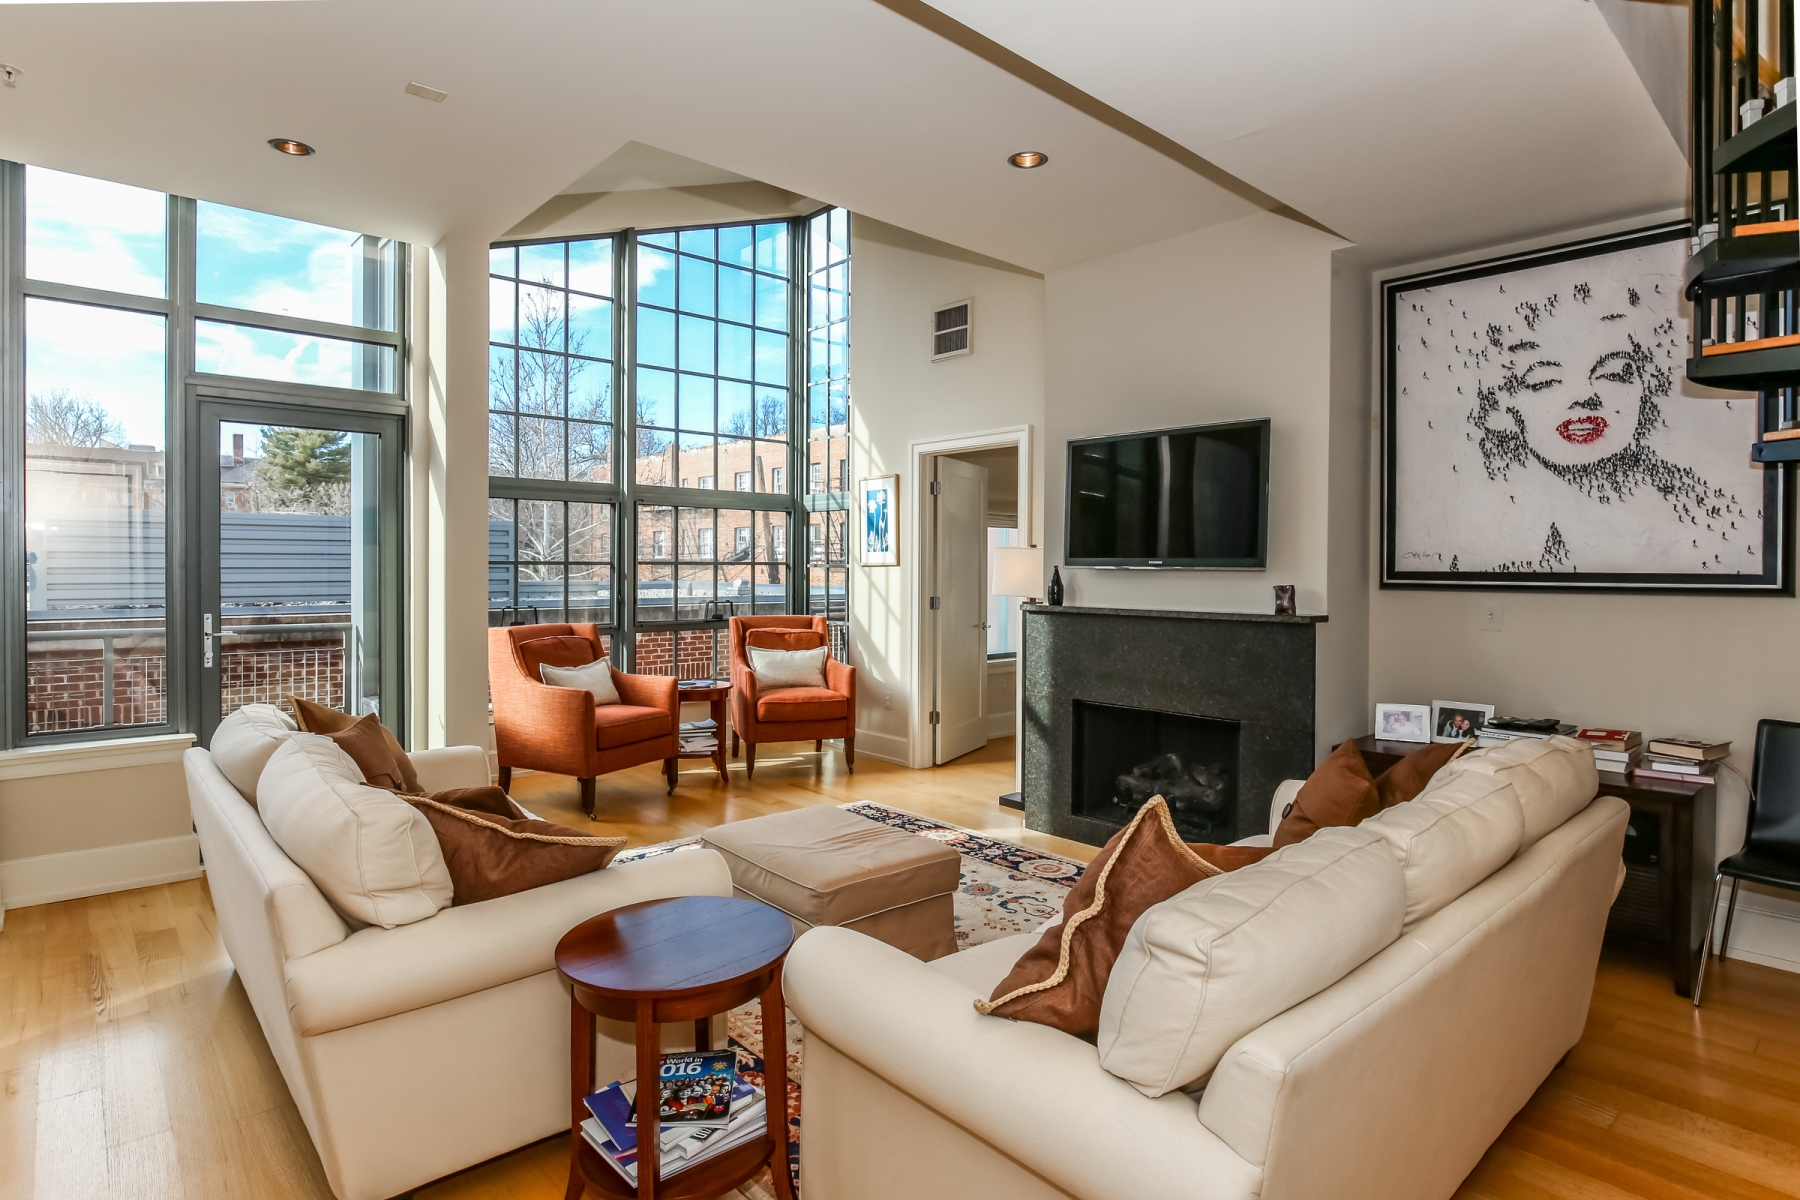 Property For Sale at 2516 Q Street Nw Q302, Washington